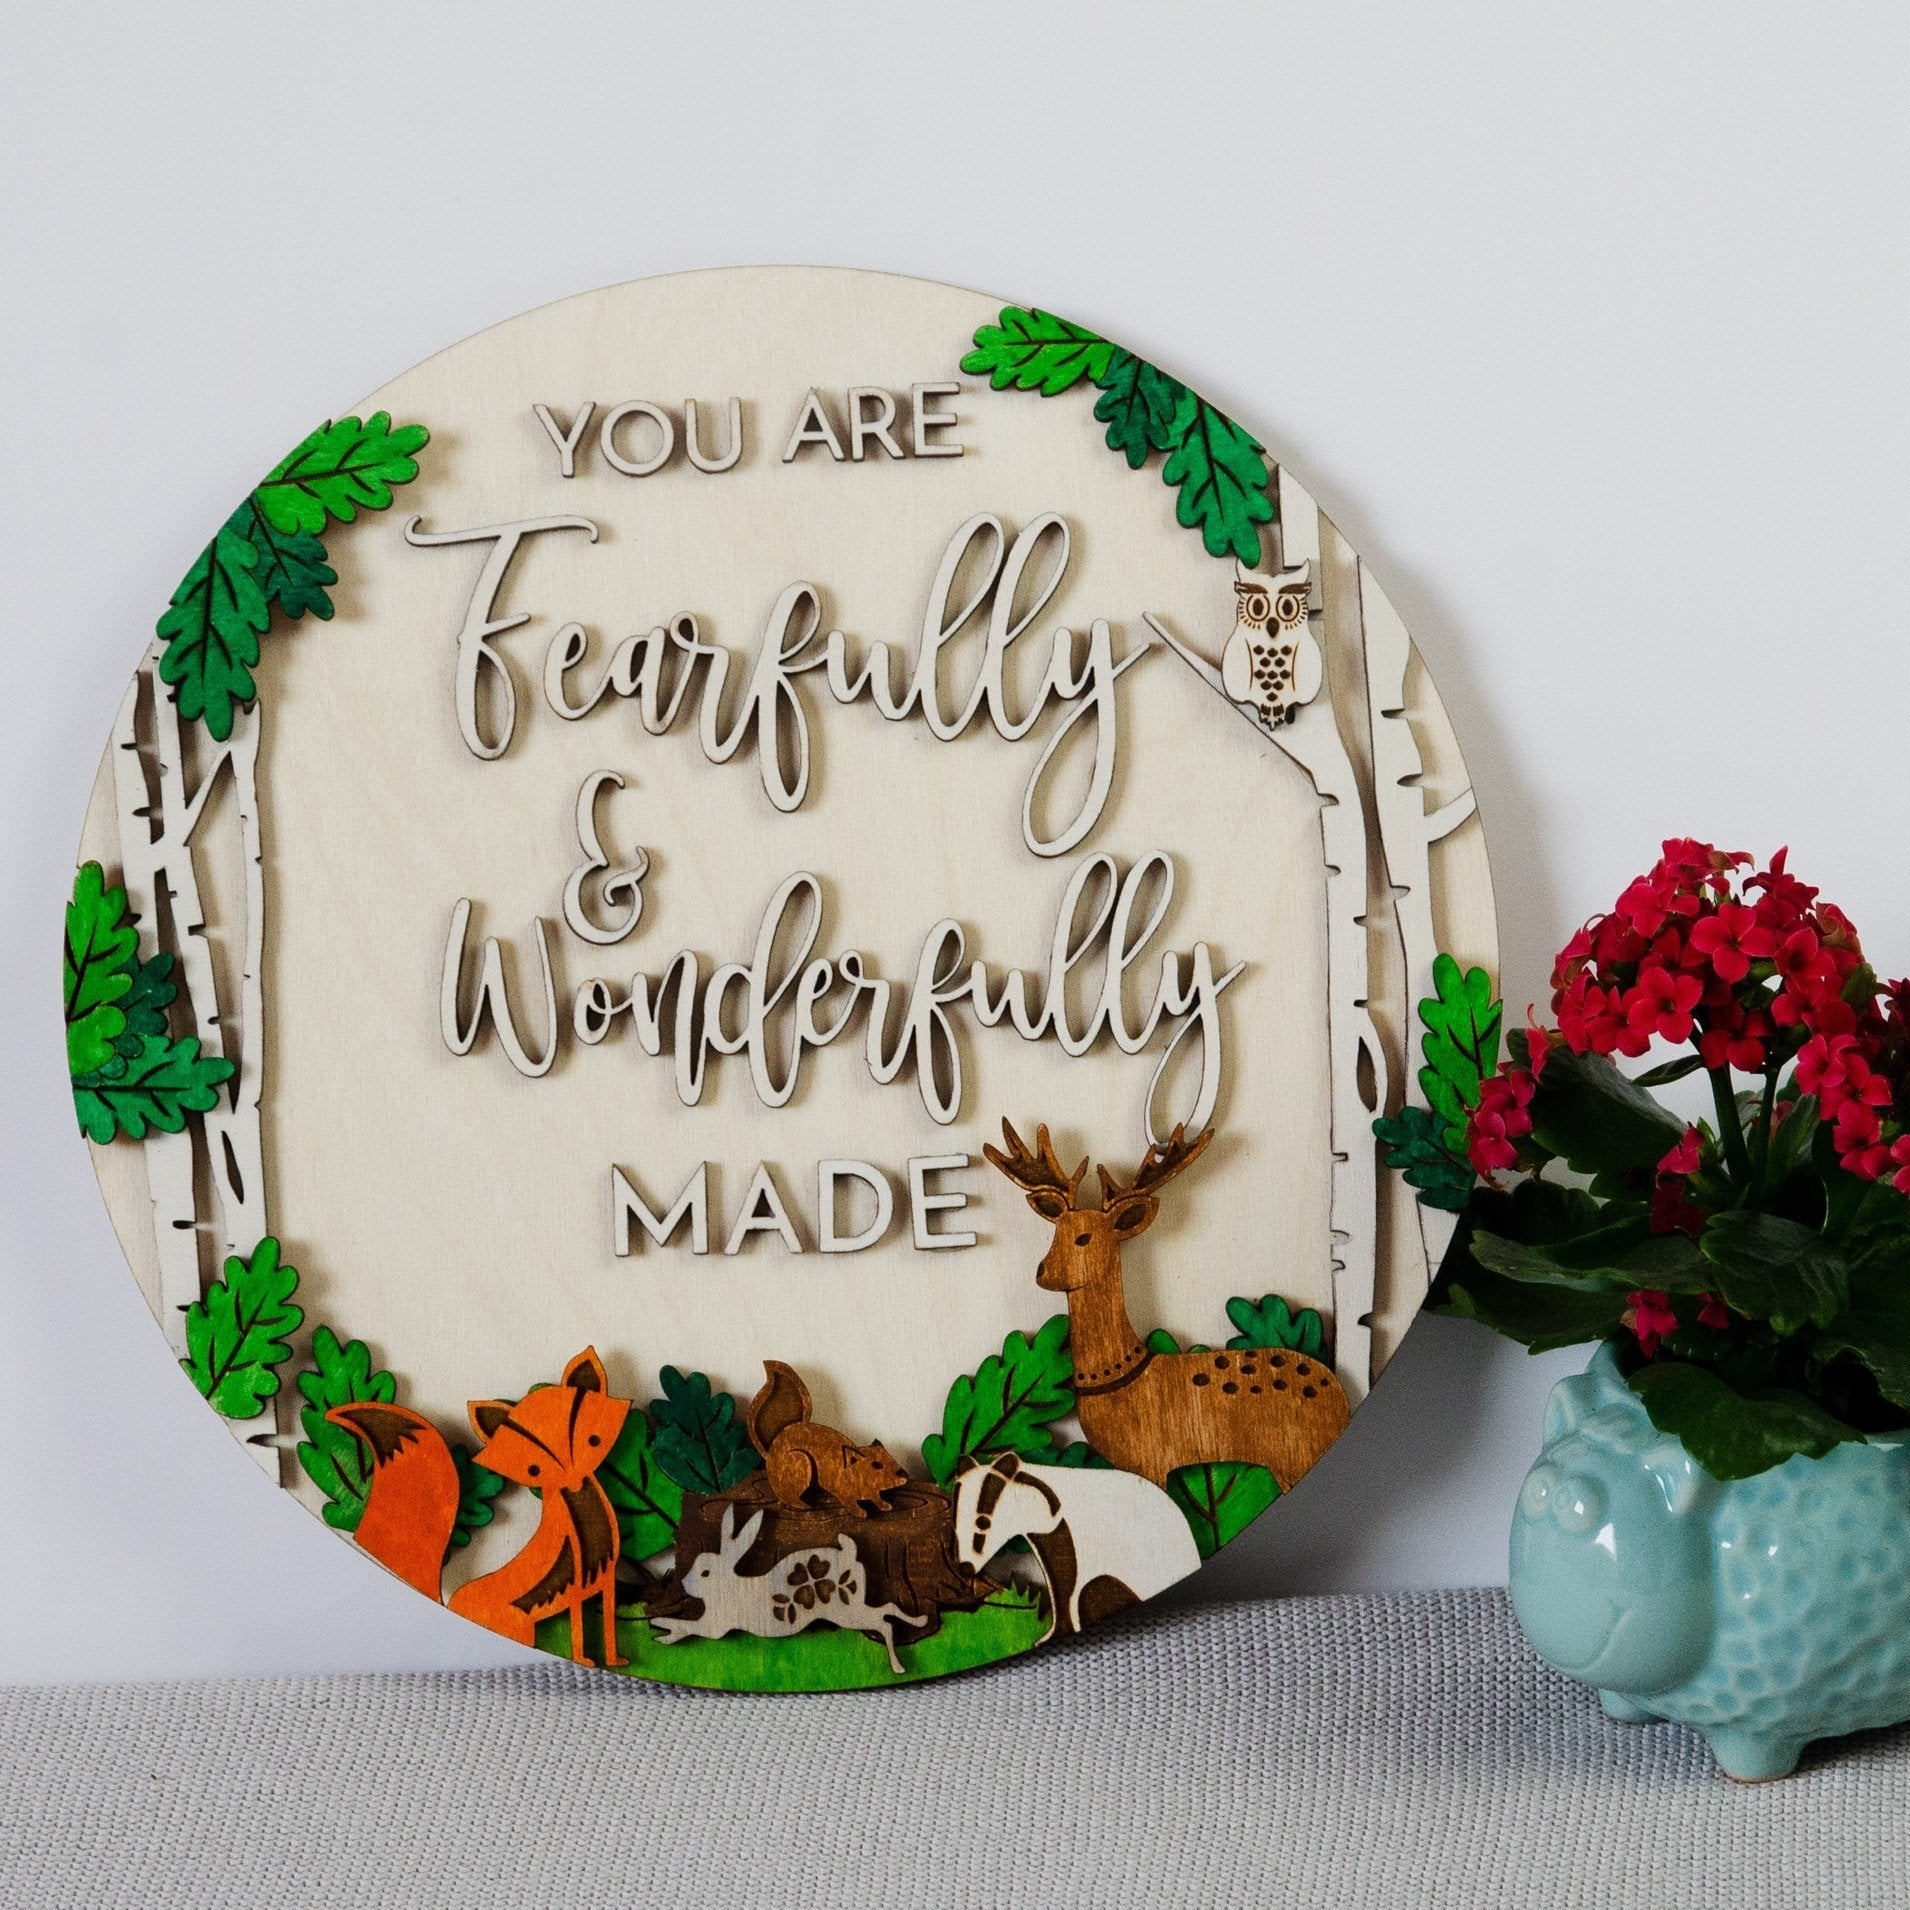 Woodland Fearfully & Wonderfully made